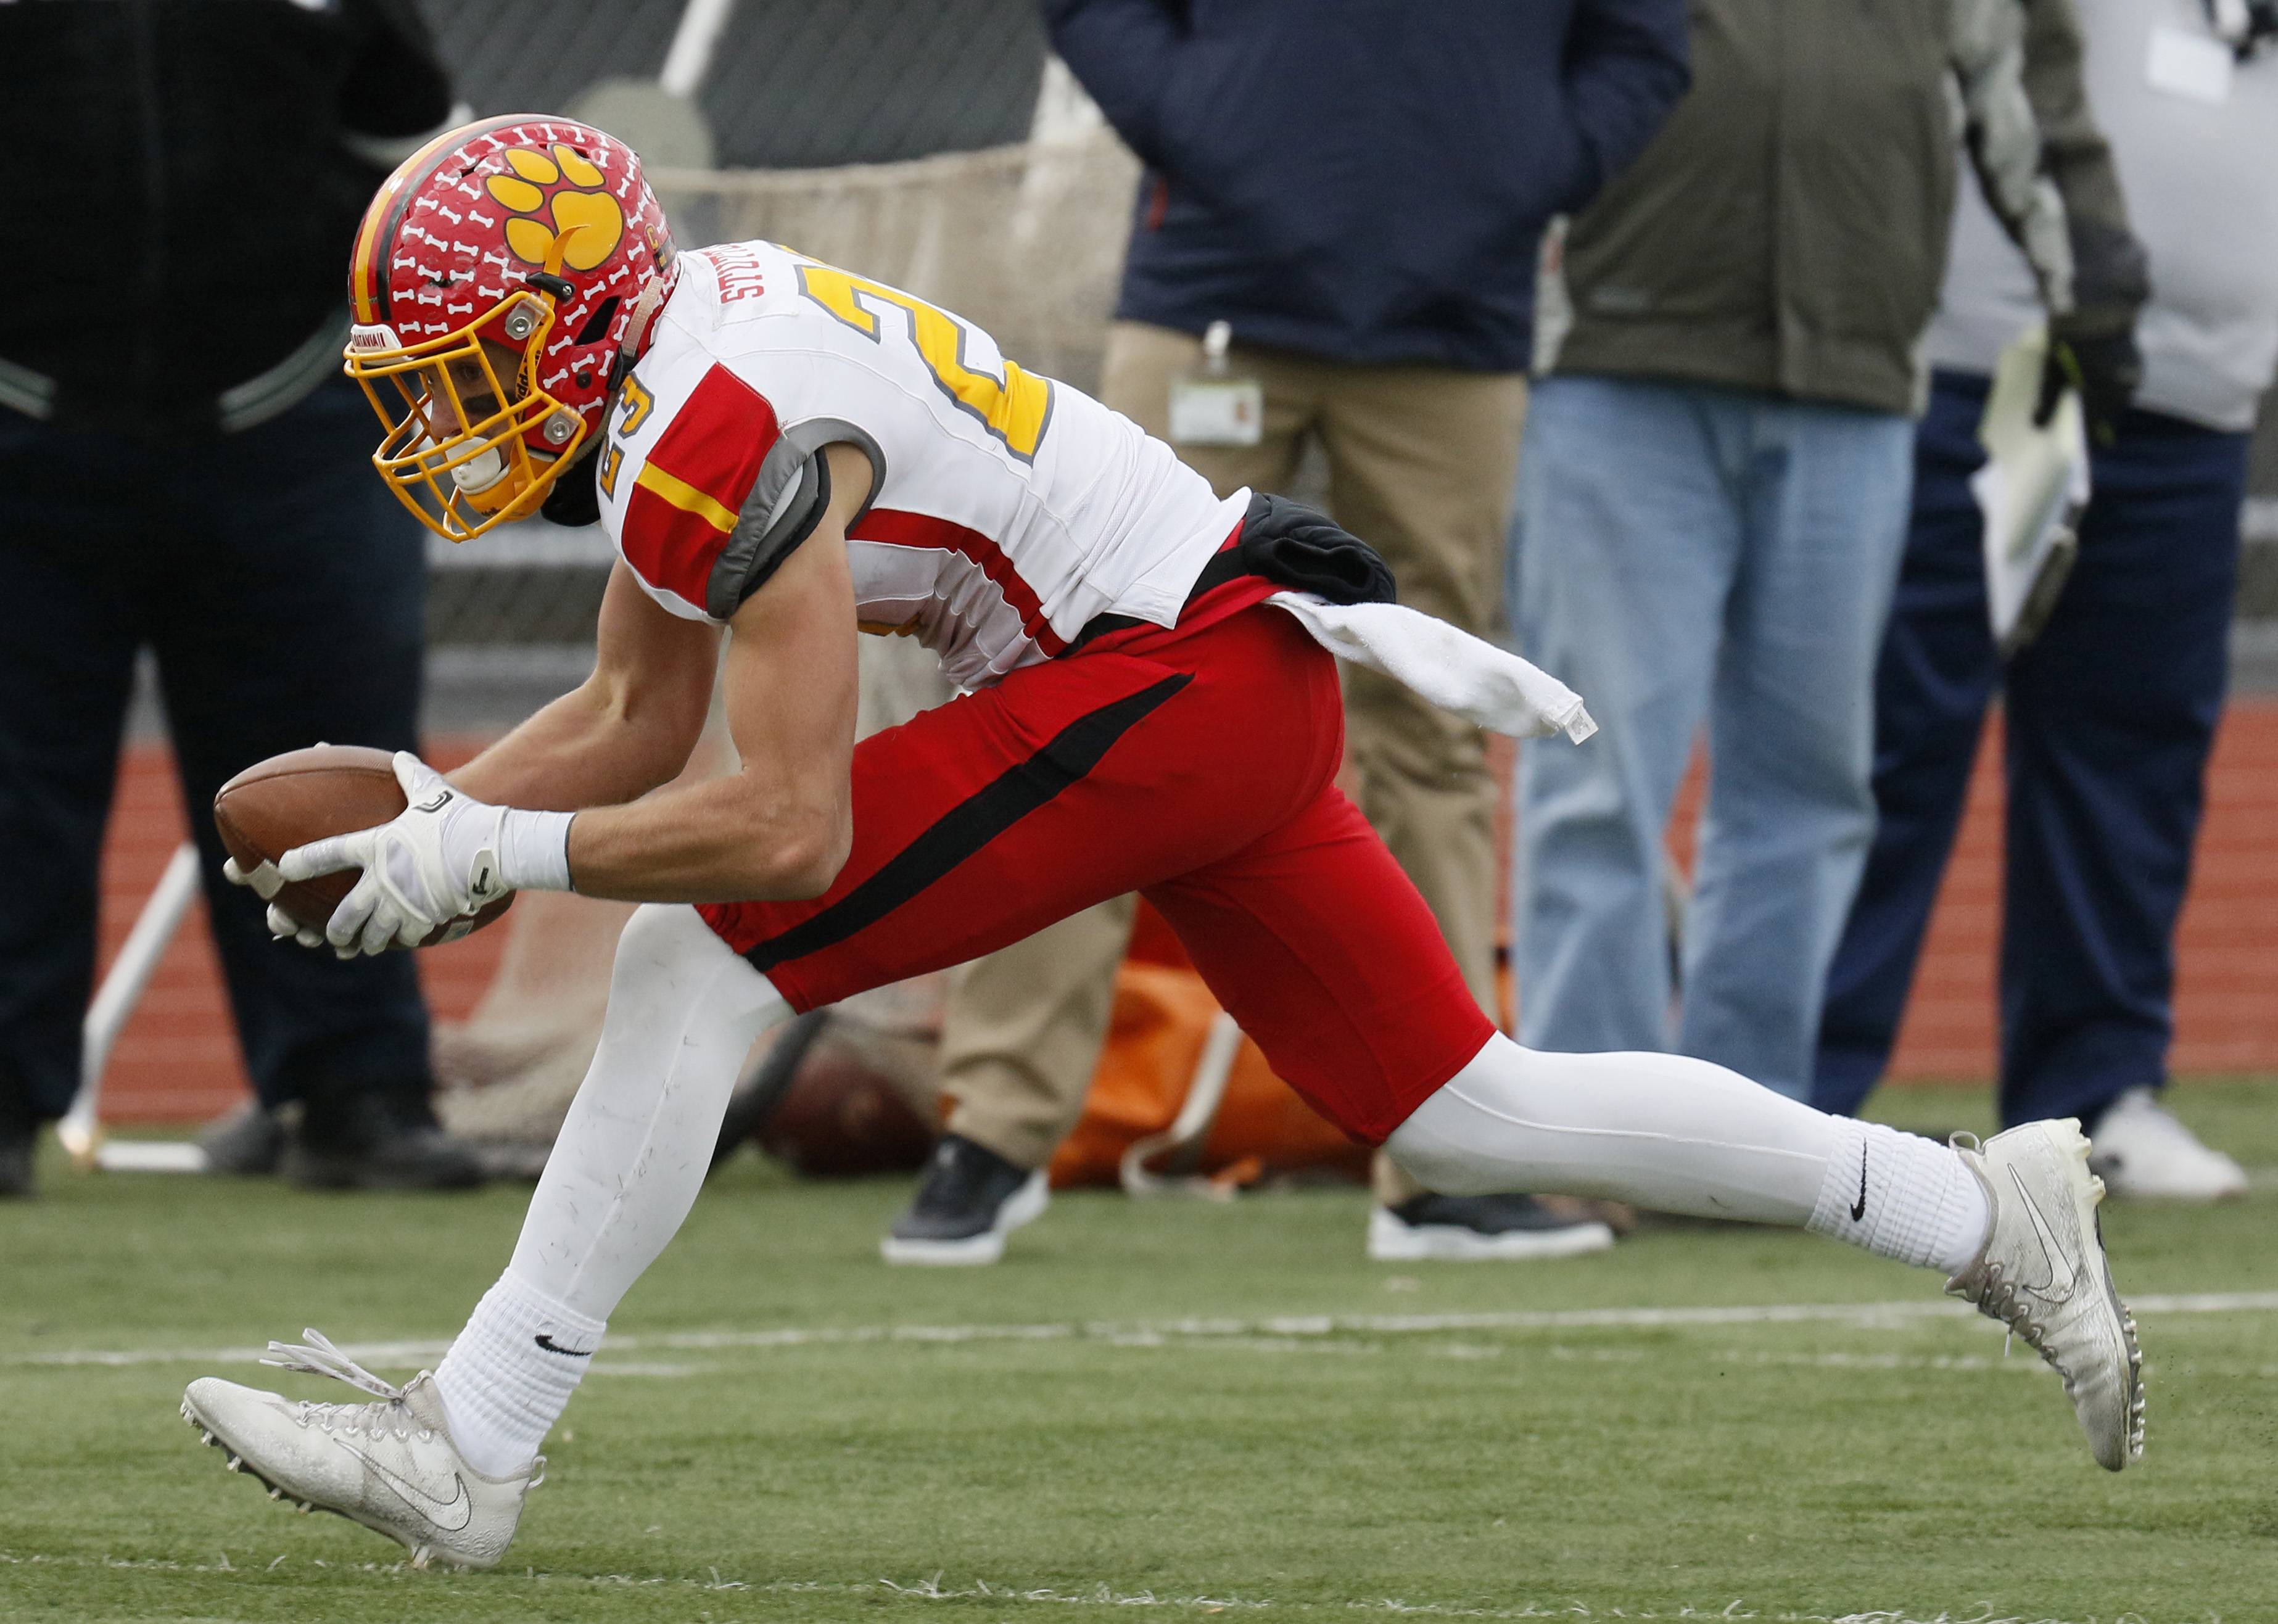 Batavia's Tommy Stuttle catches a second half touchdown pass during a 20-10 win against Lincoln-Way West.